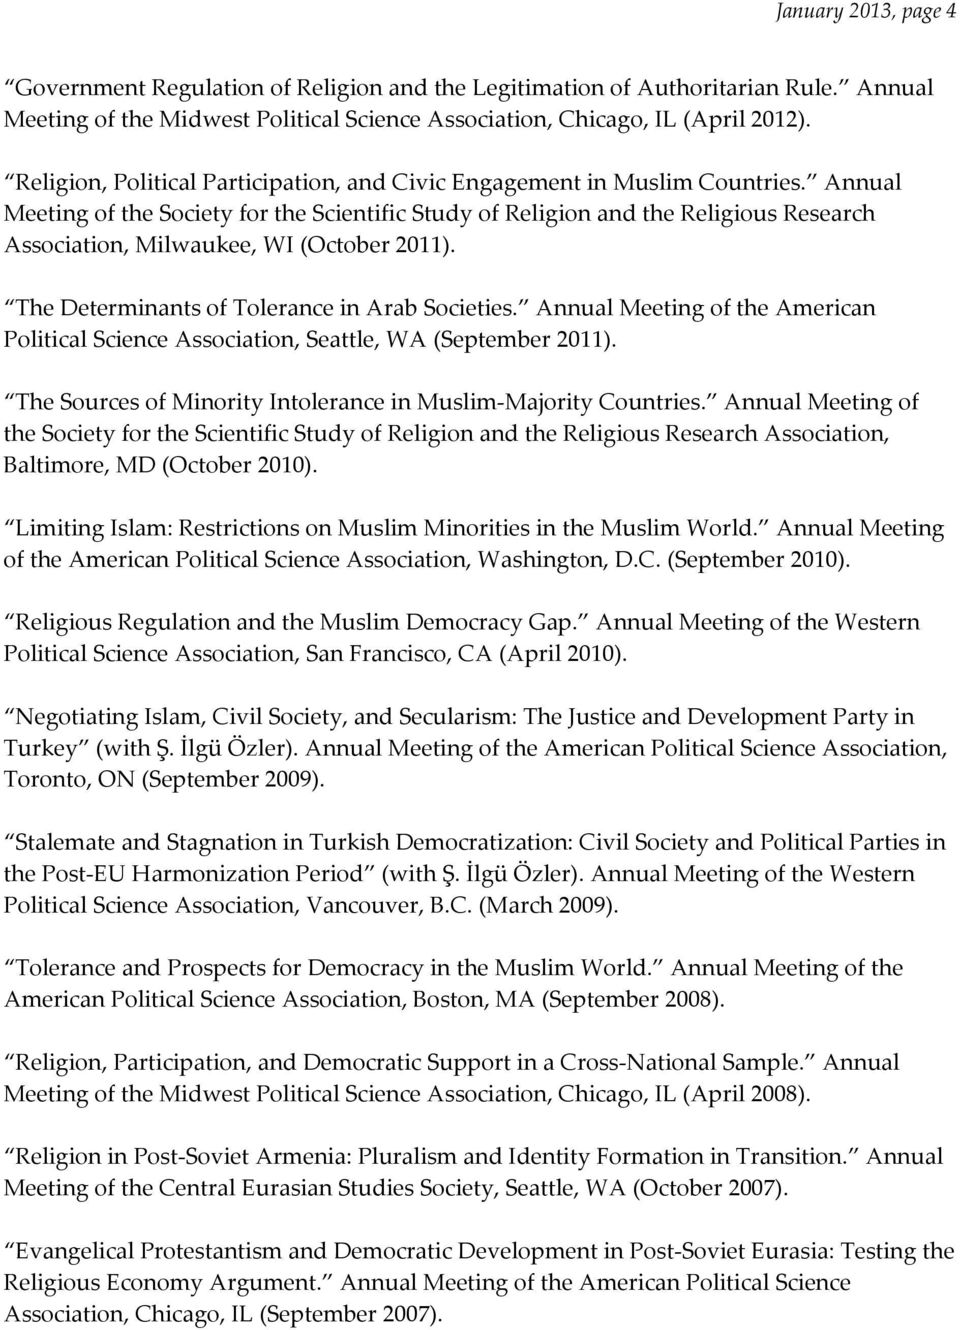 Annual Meeting of the Society for the Scientific Study of Religion and the Religious Research Association, Milwaukee, WI (October 2011). The Determinants of Tolerance in Arab Societies.